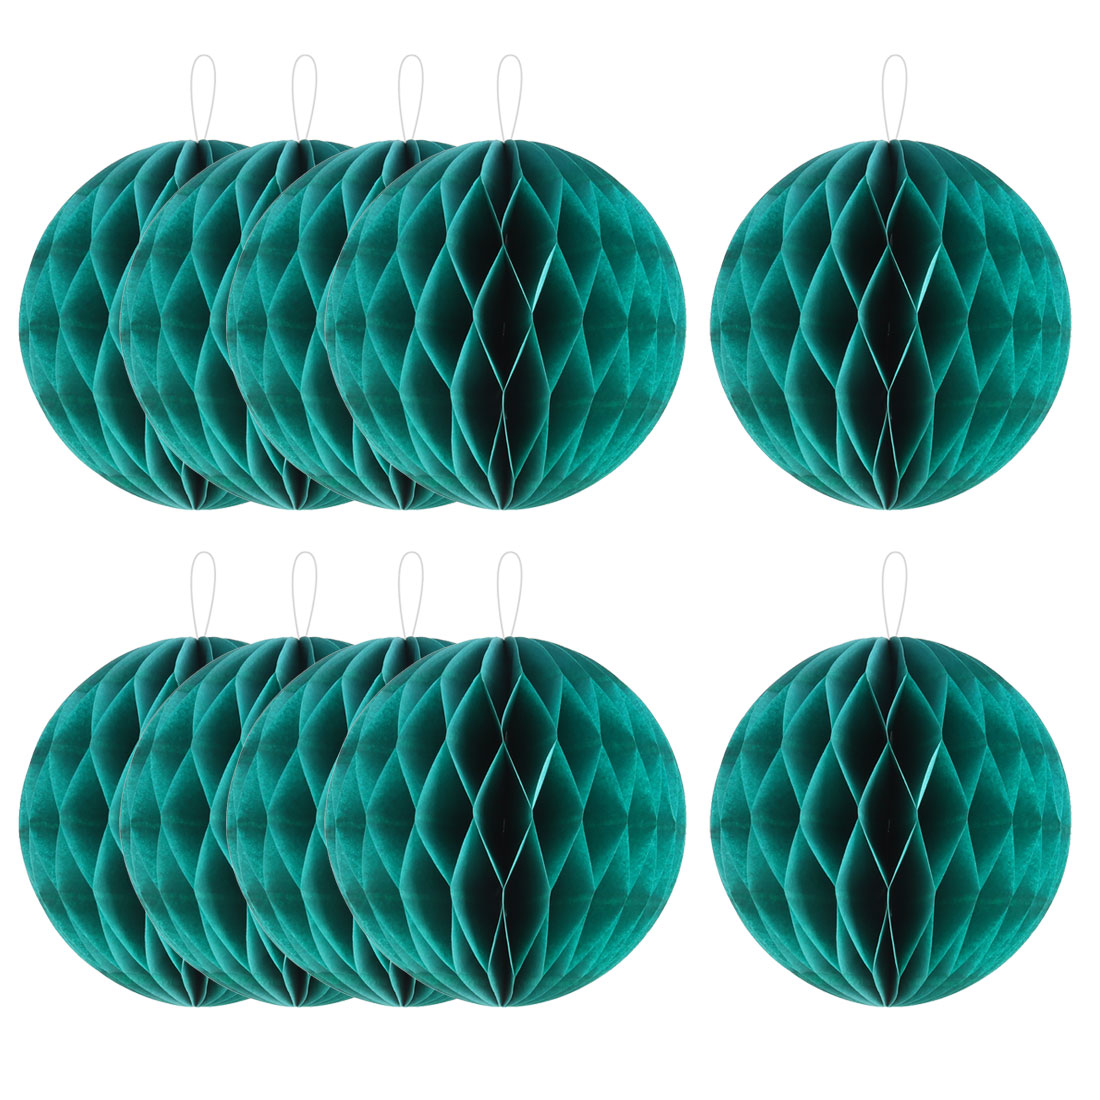 Home Hotel Paper Wall Window Door DIY Decoration Honeycomb Ball Green 4 Inch Dia 10 Pcs